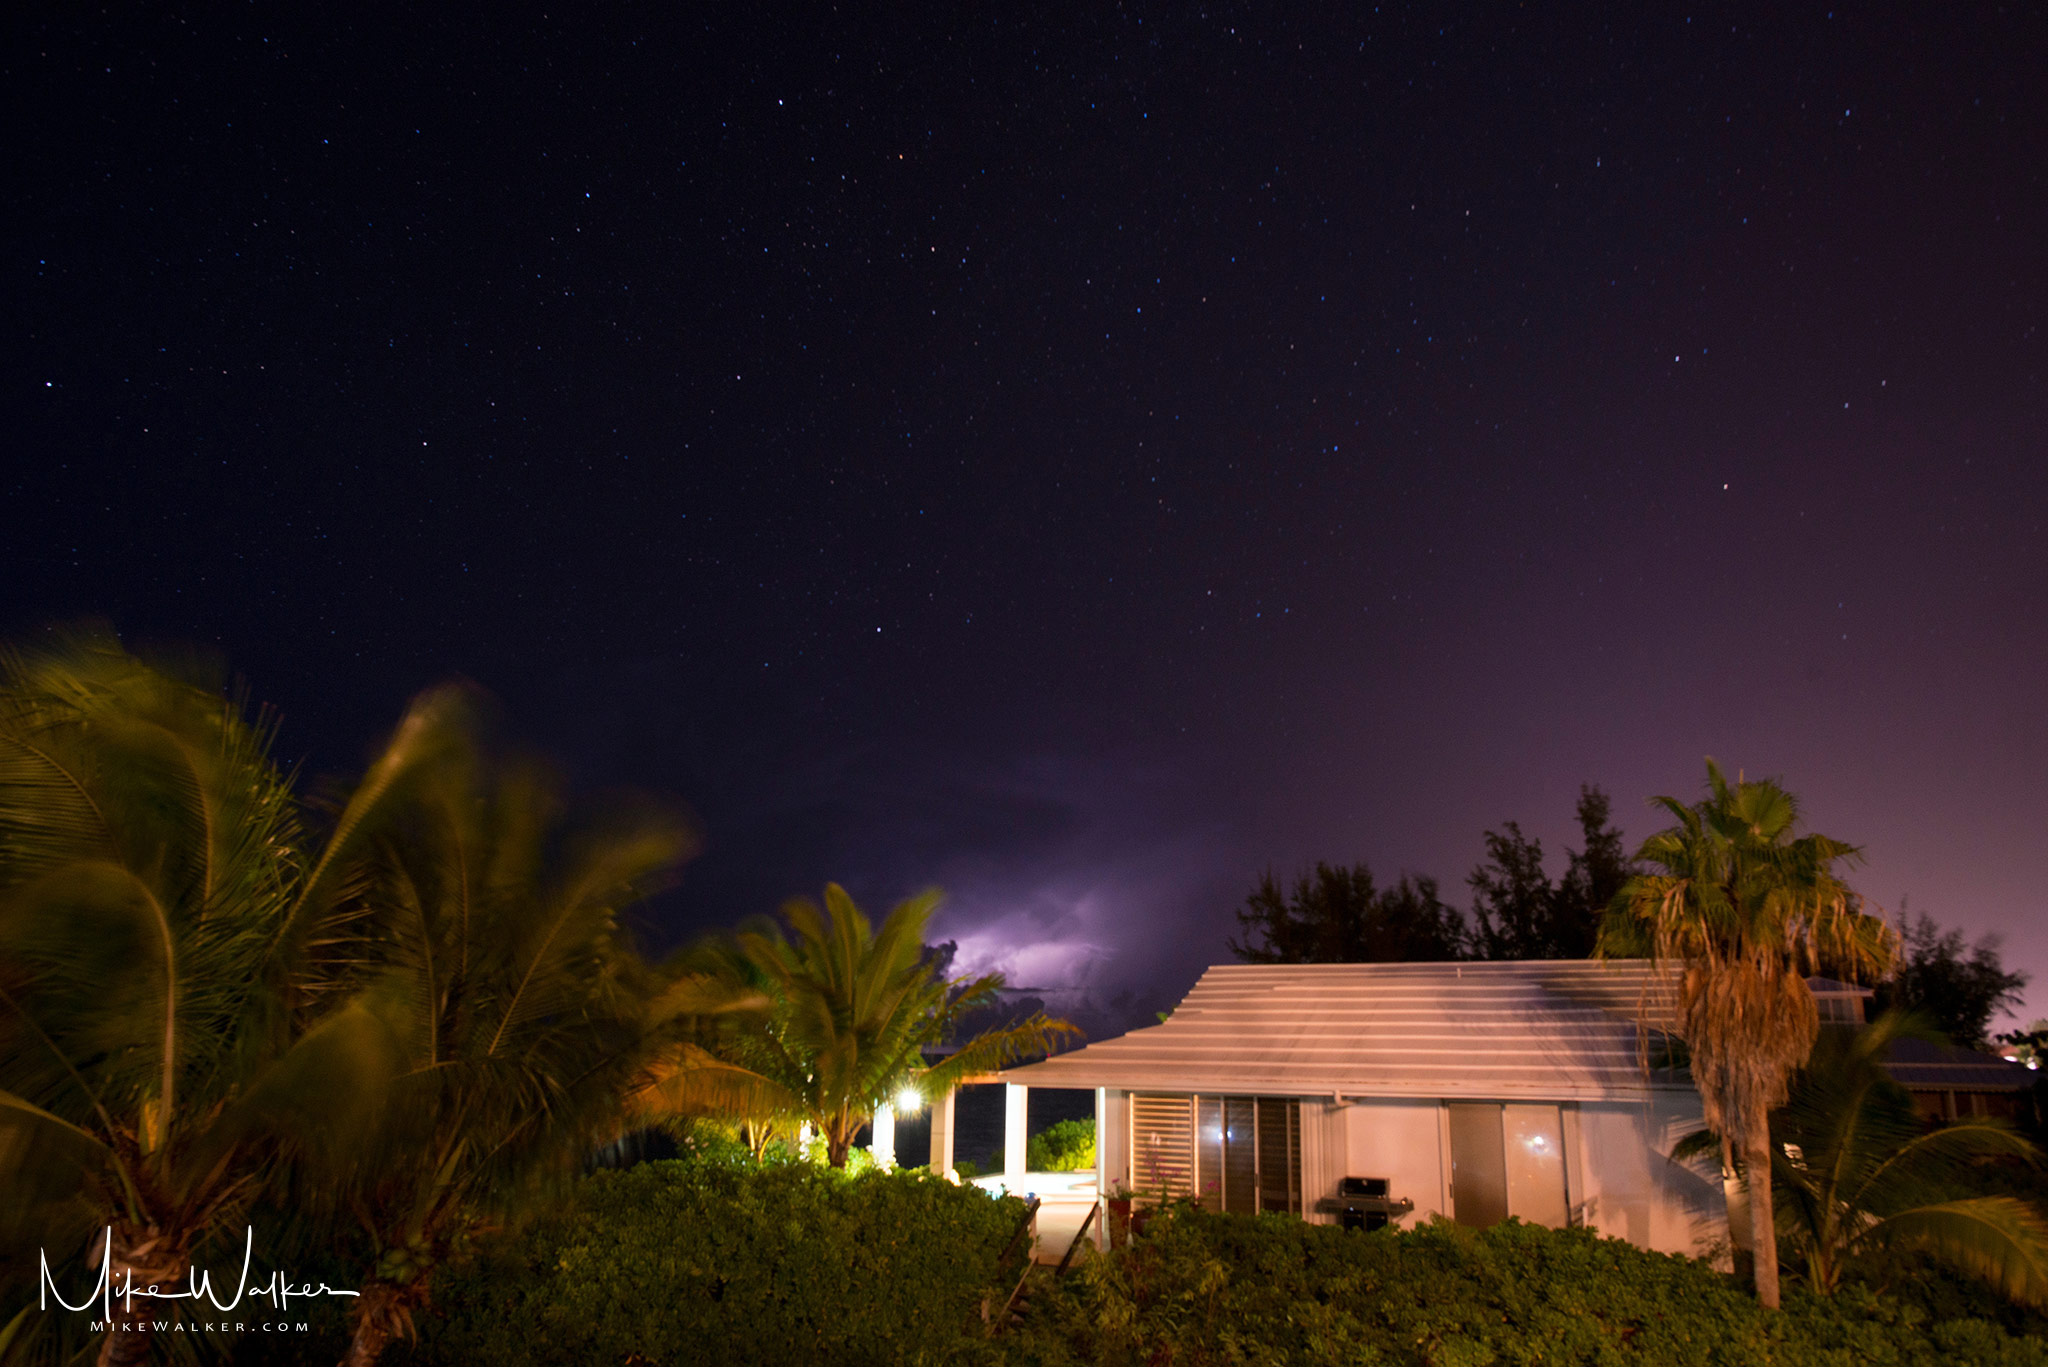 Night photograph with stars and a storm in the distance. Travel photography by Mike Walker.